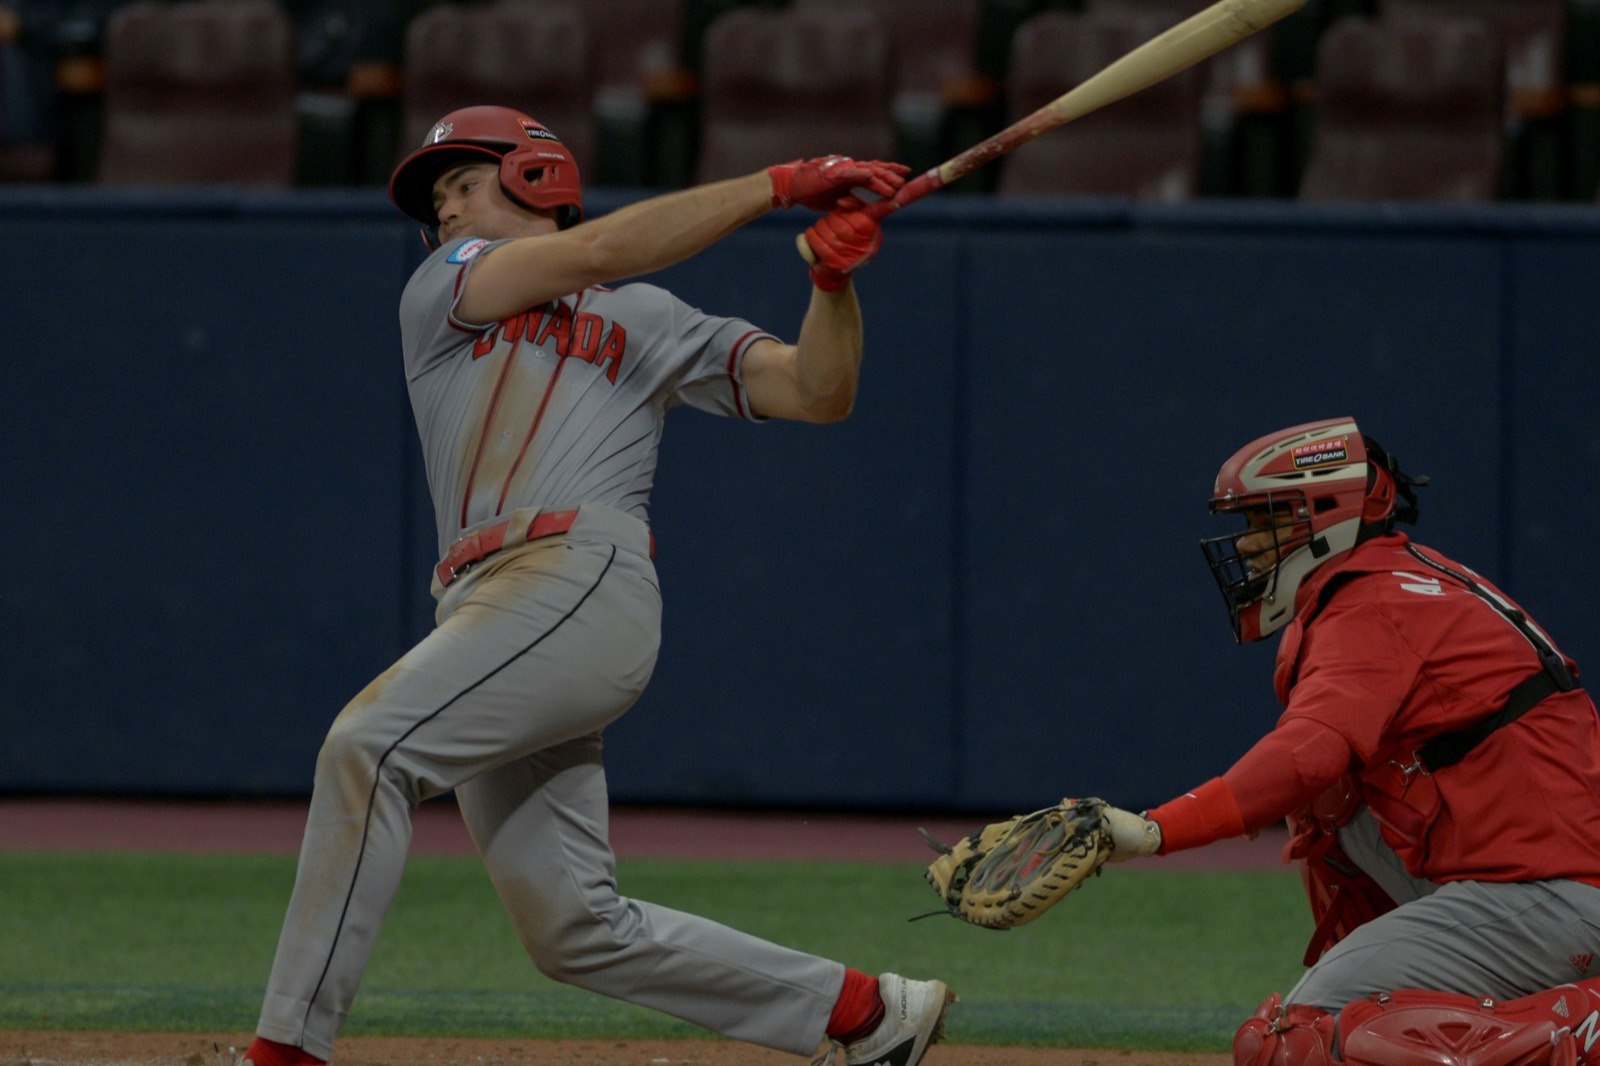 Eric Wood doubled and scored the first run by Canada